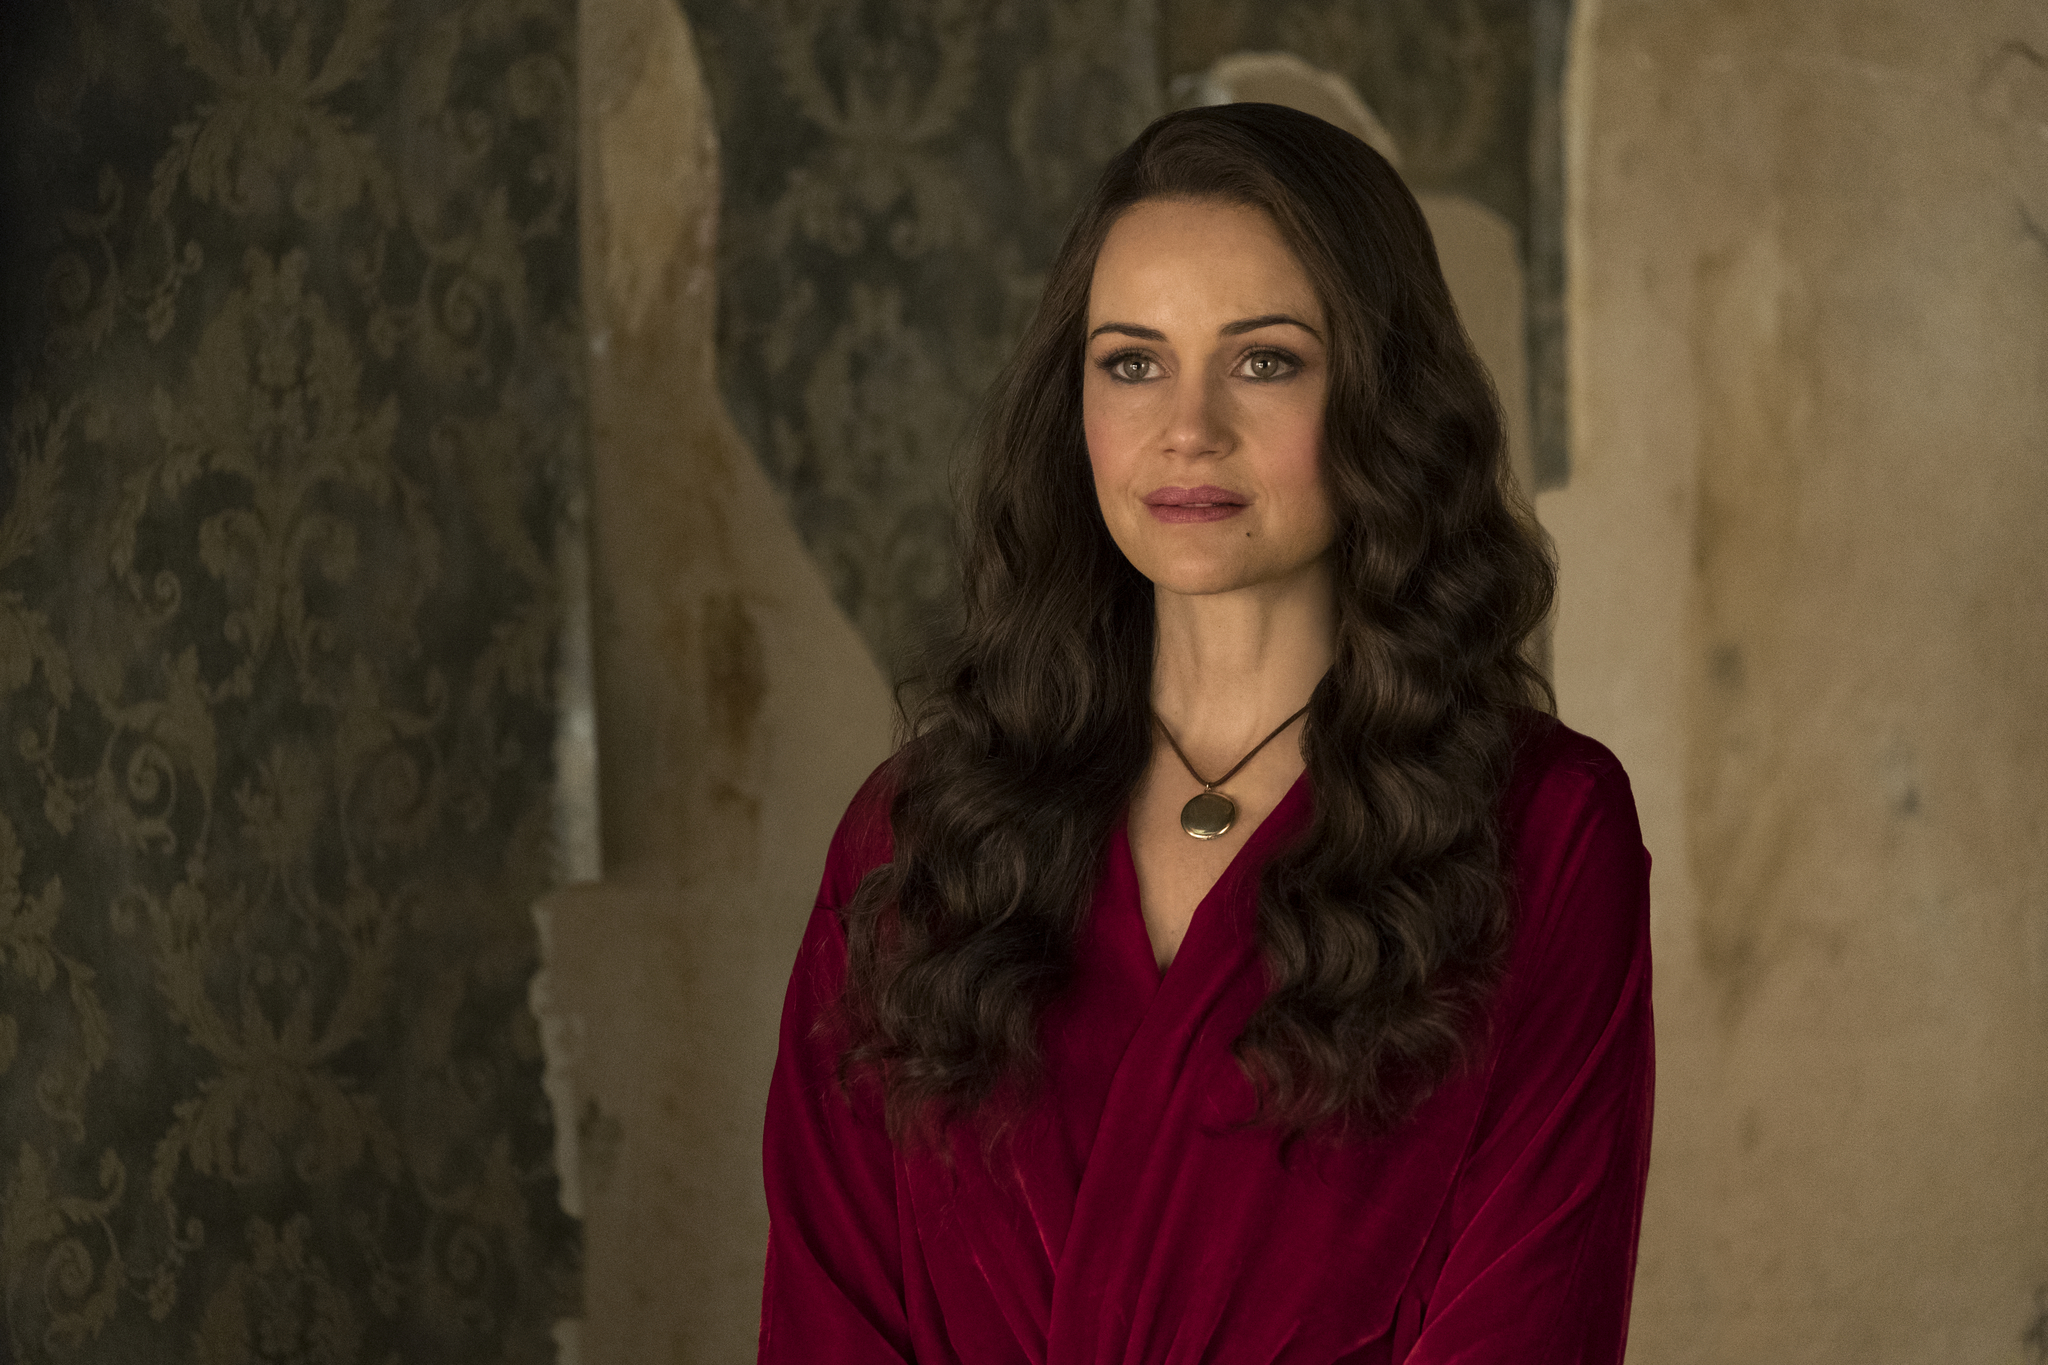 The Haunting Of Hill House The Bent Neck Lady Tv Episode 2018 Imdb